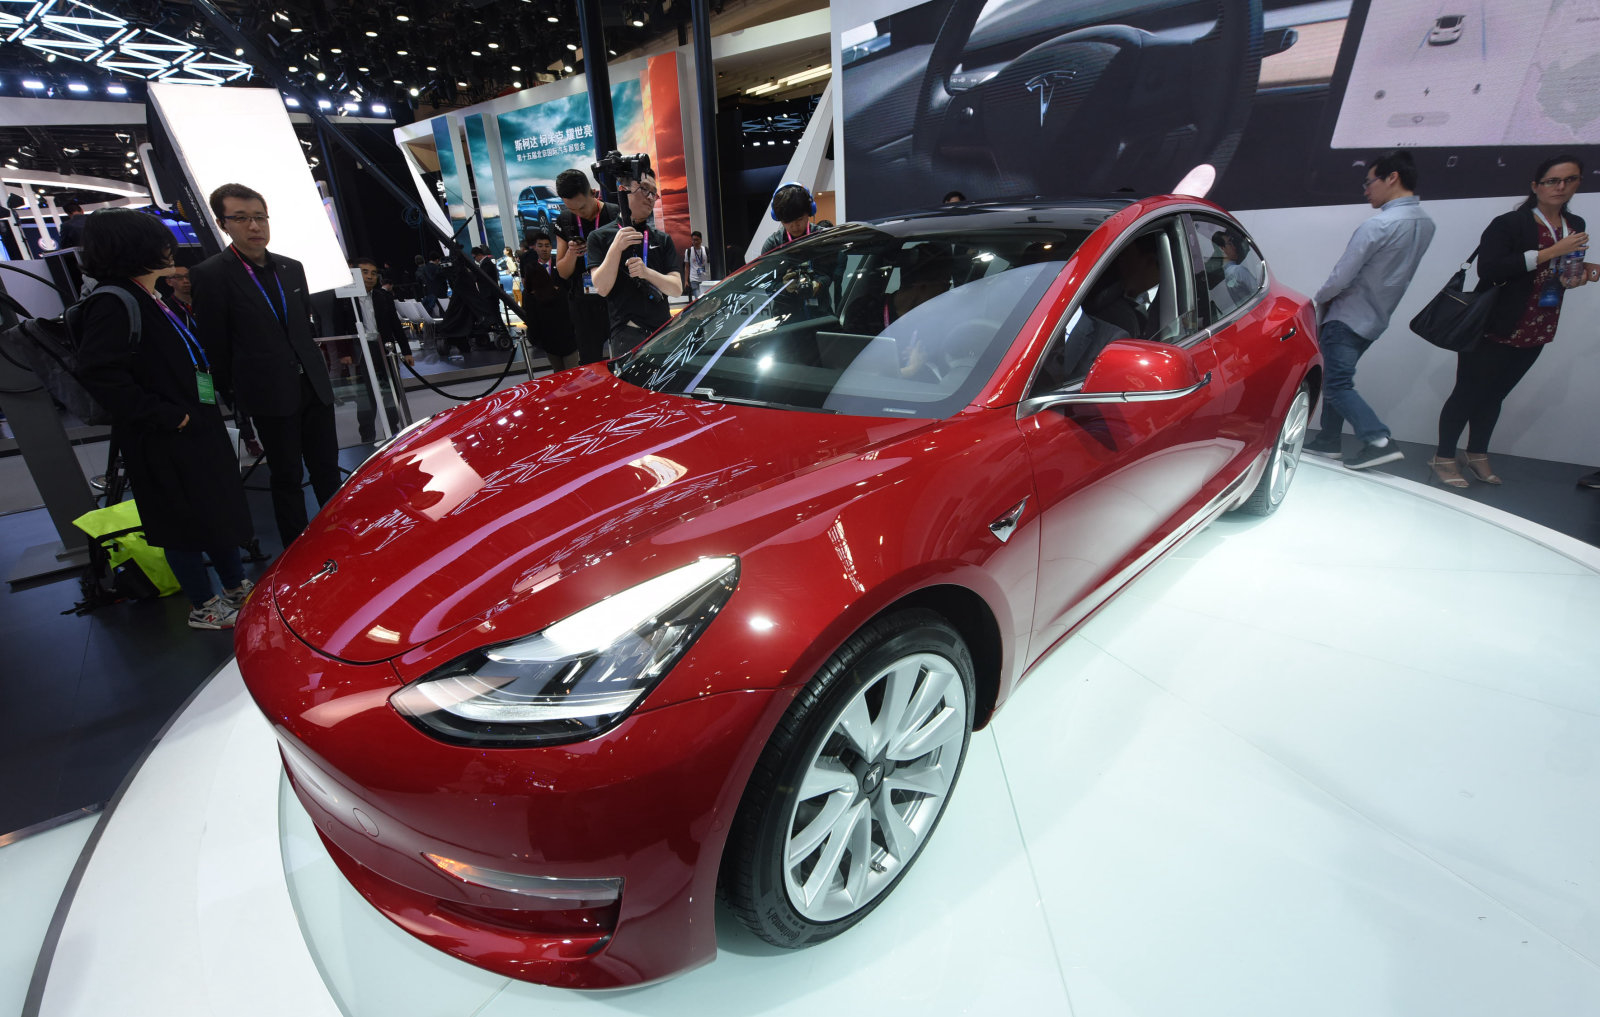 BEIJING, CHINA - APRIL 25:  A Tesla Model 3 car is on display during the Auto China 2018 at China International Exhibition Center on April 25, 2018 in Beijing, China. Auto China 2018, also known as 2018 Beijing International Automotive Exhibition, will be held from April 27 to May 4.  (Photo by VCG/VCG via Getty Images)